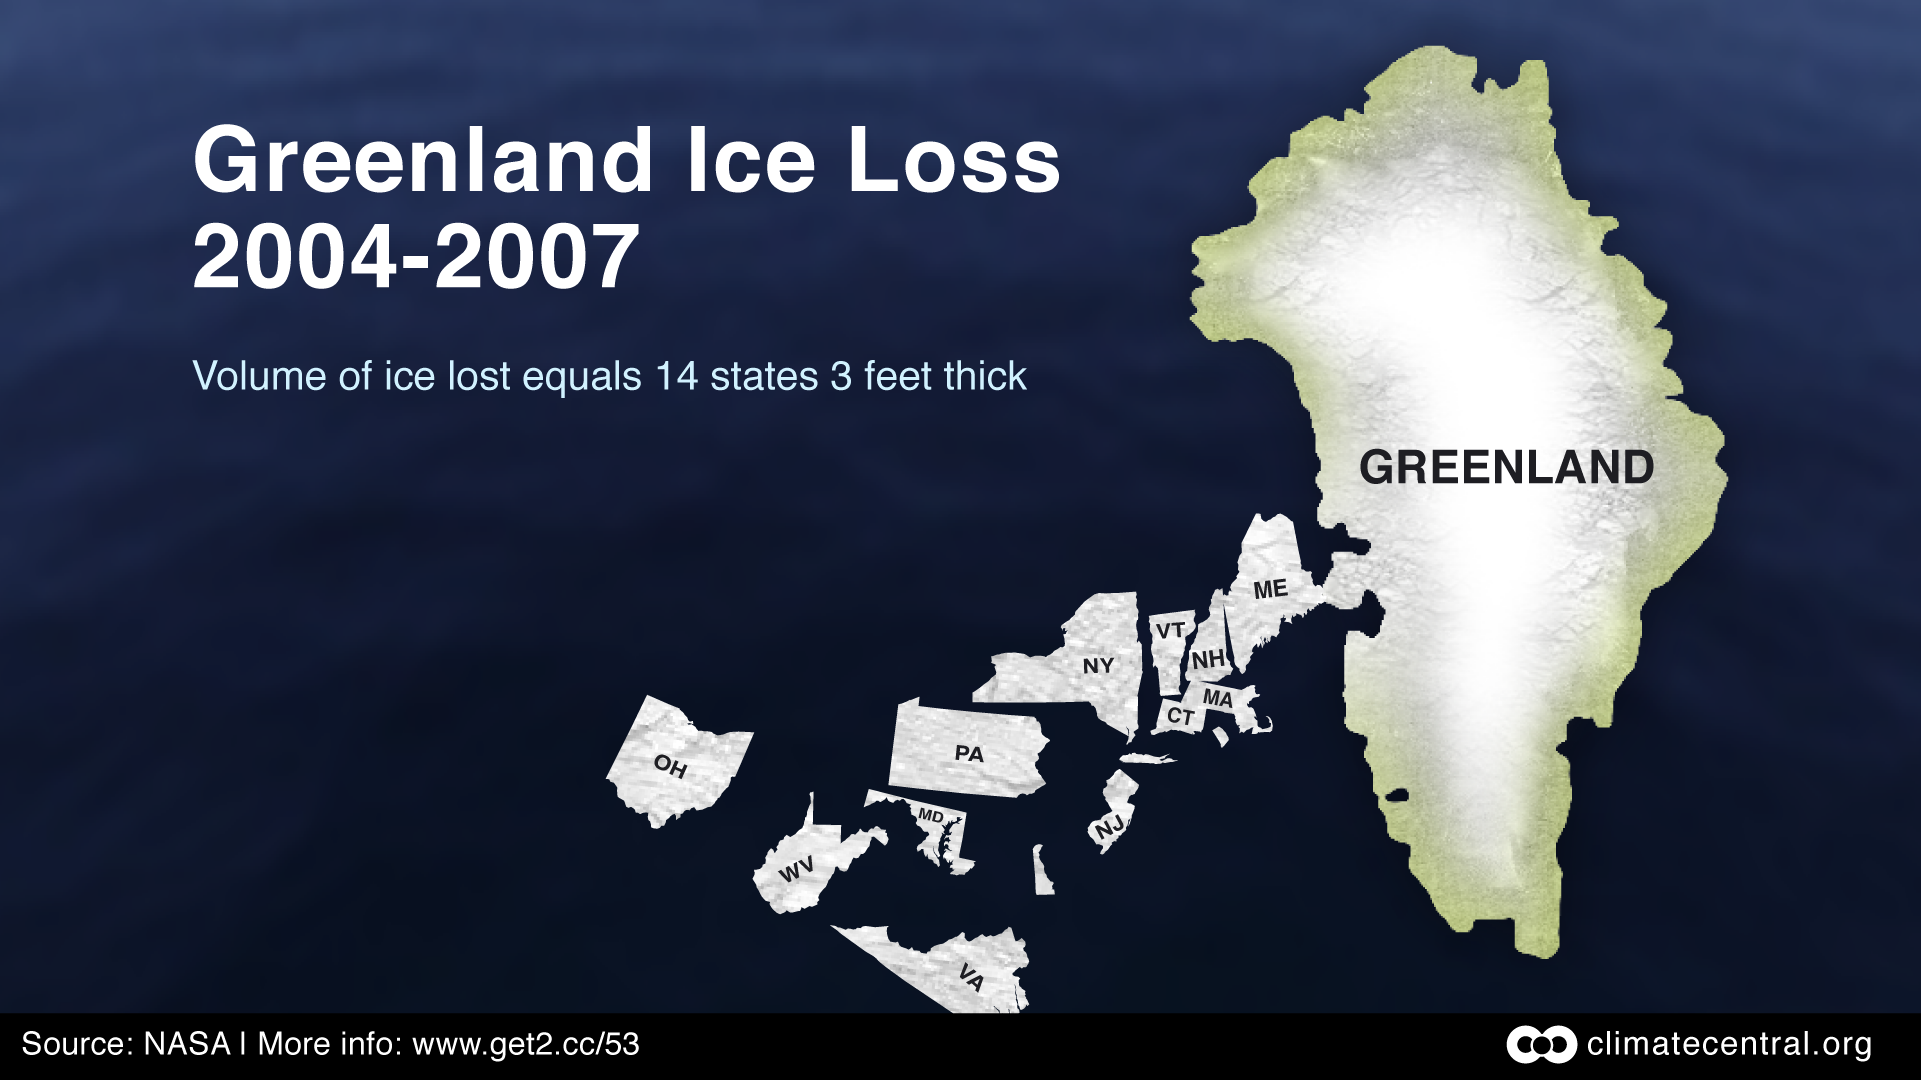 and would cover 14 states for Greenland..